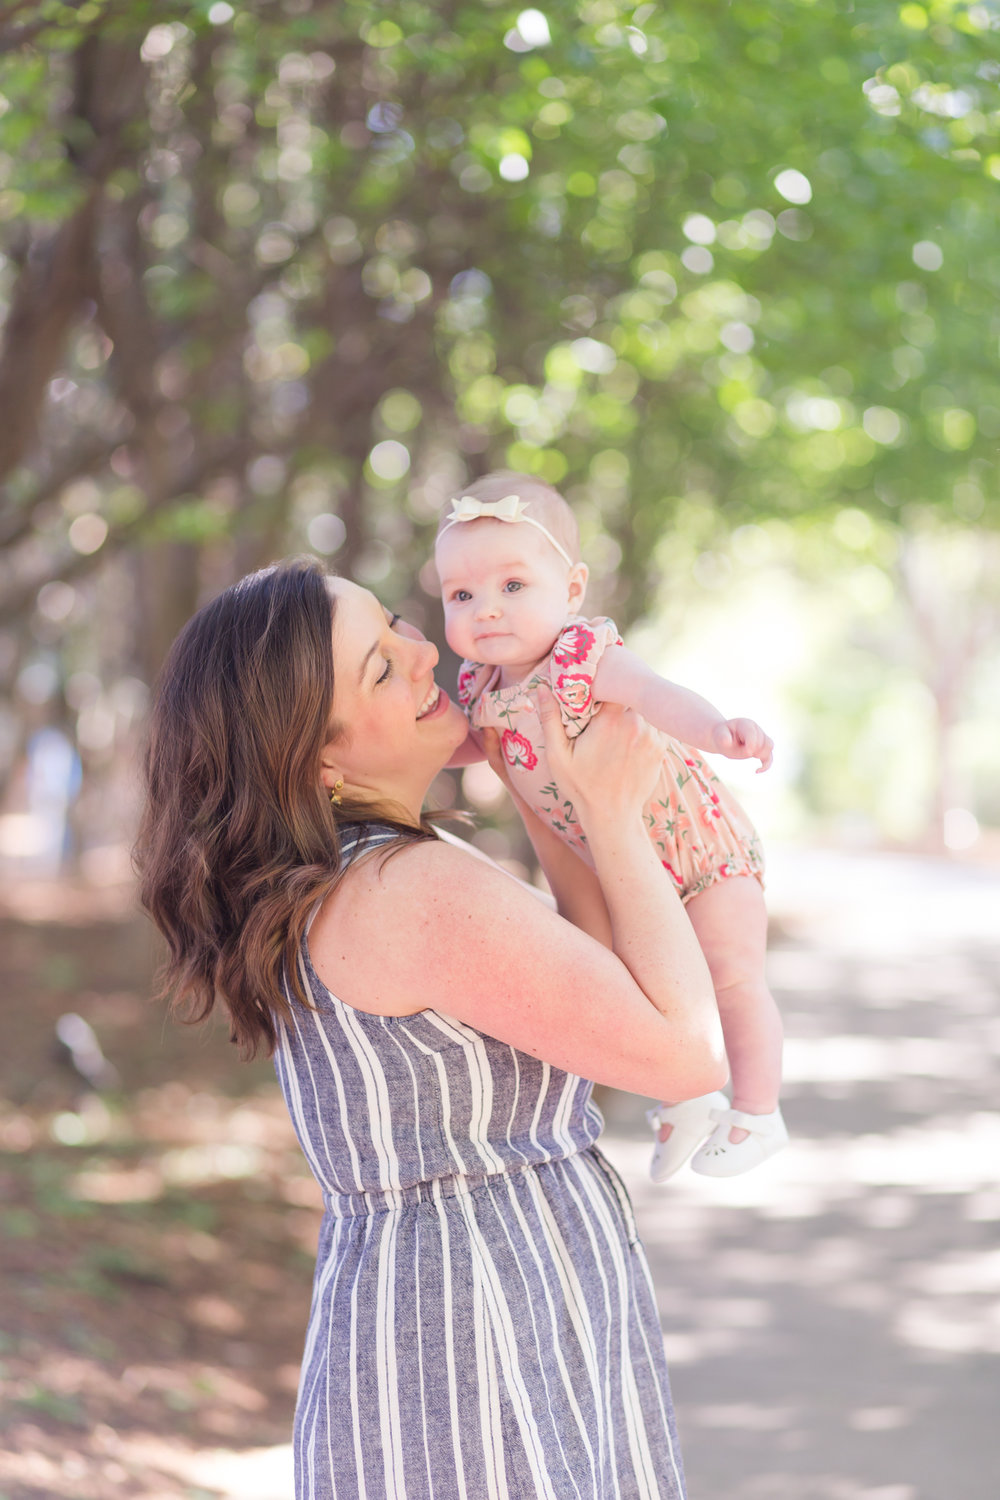 20170409-spartanburg-wofford-college-family-photos-with-baby-10.jpg